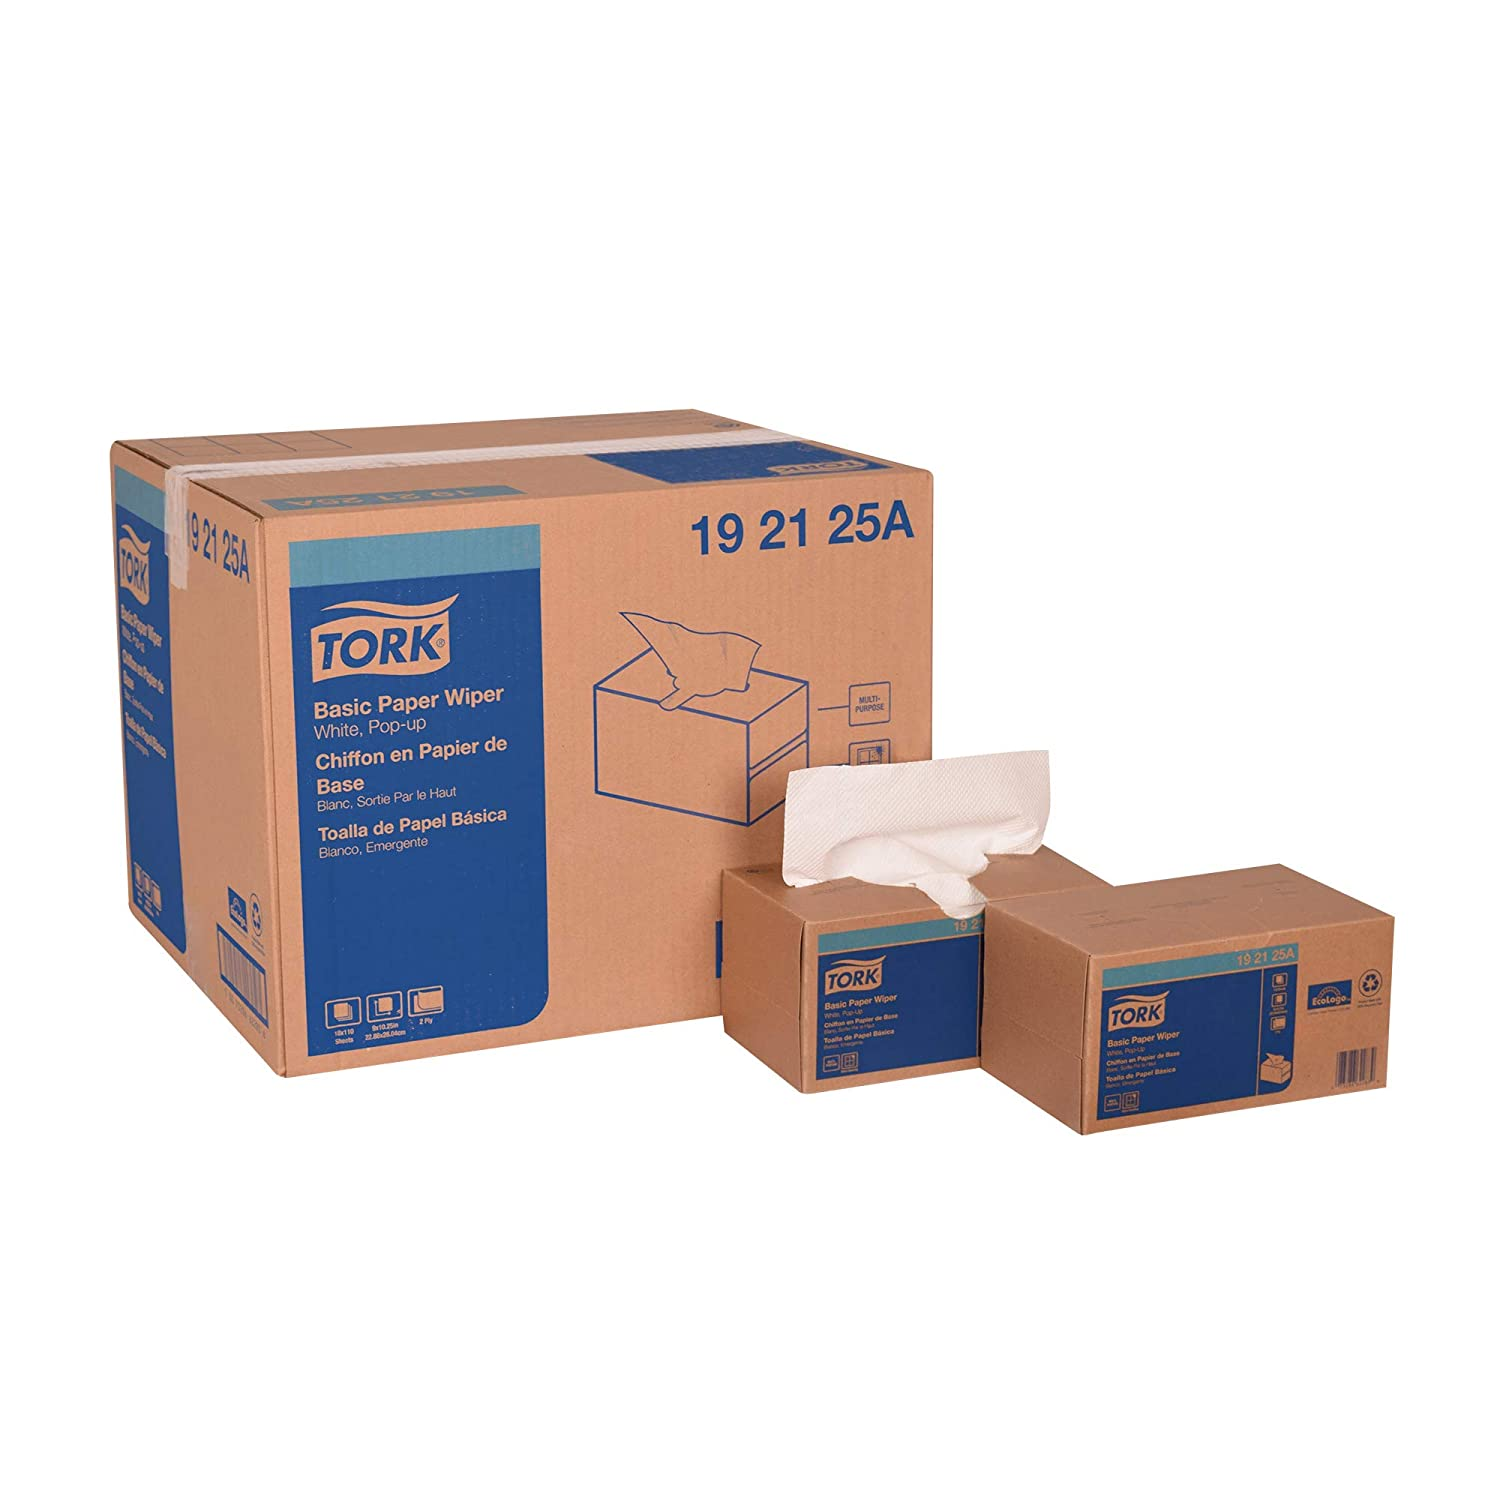 Tork 192125A Basic Paper Pop-Up Box, 2-Ply, 9